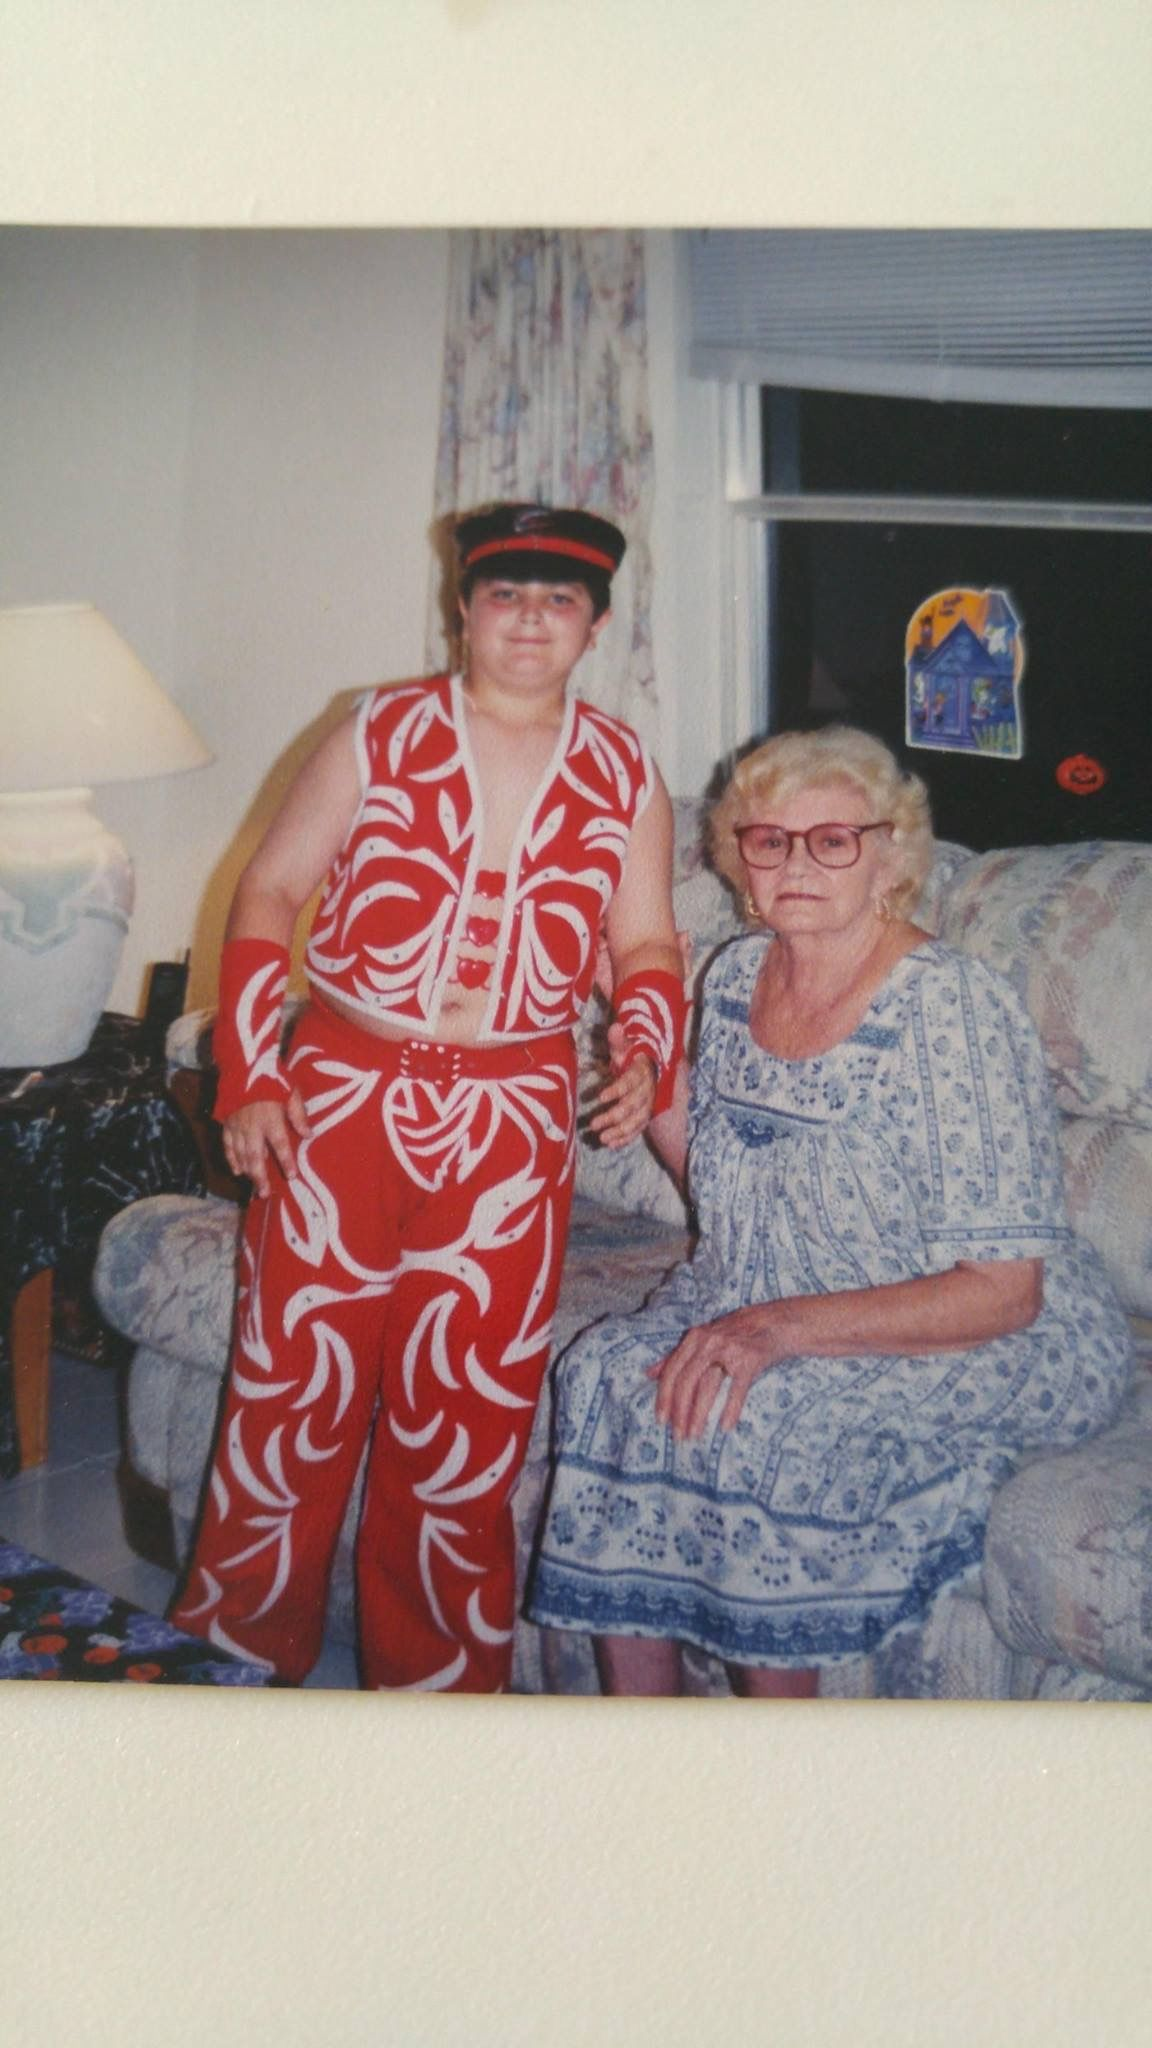 Child in Shawn Michaels halloween costume poses with grandmother ...